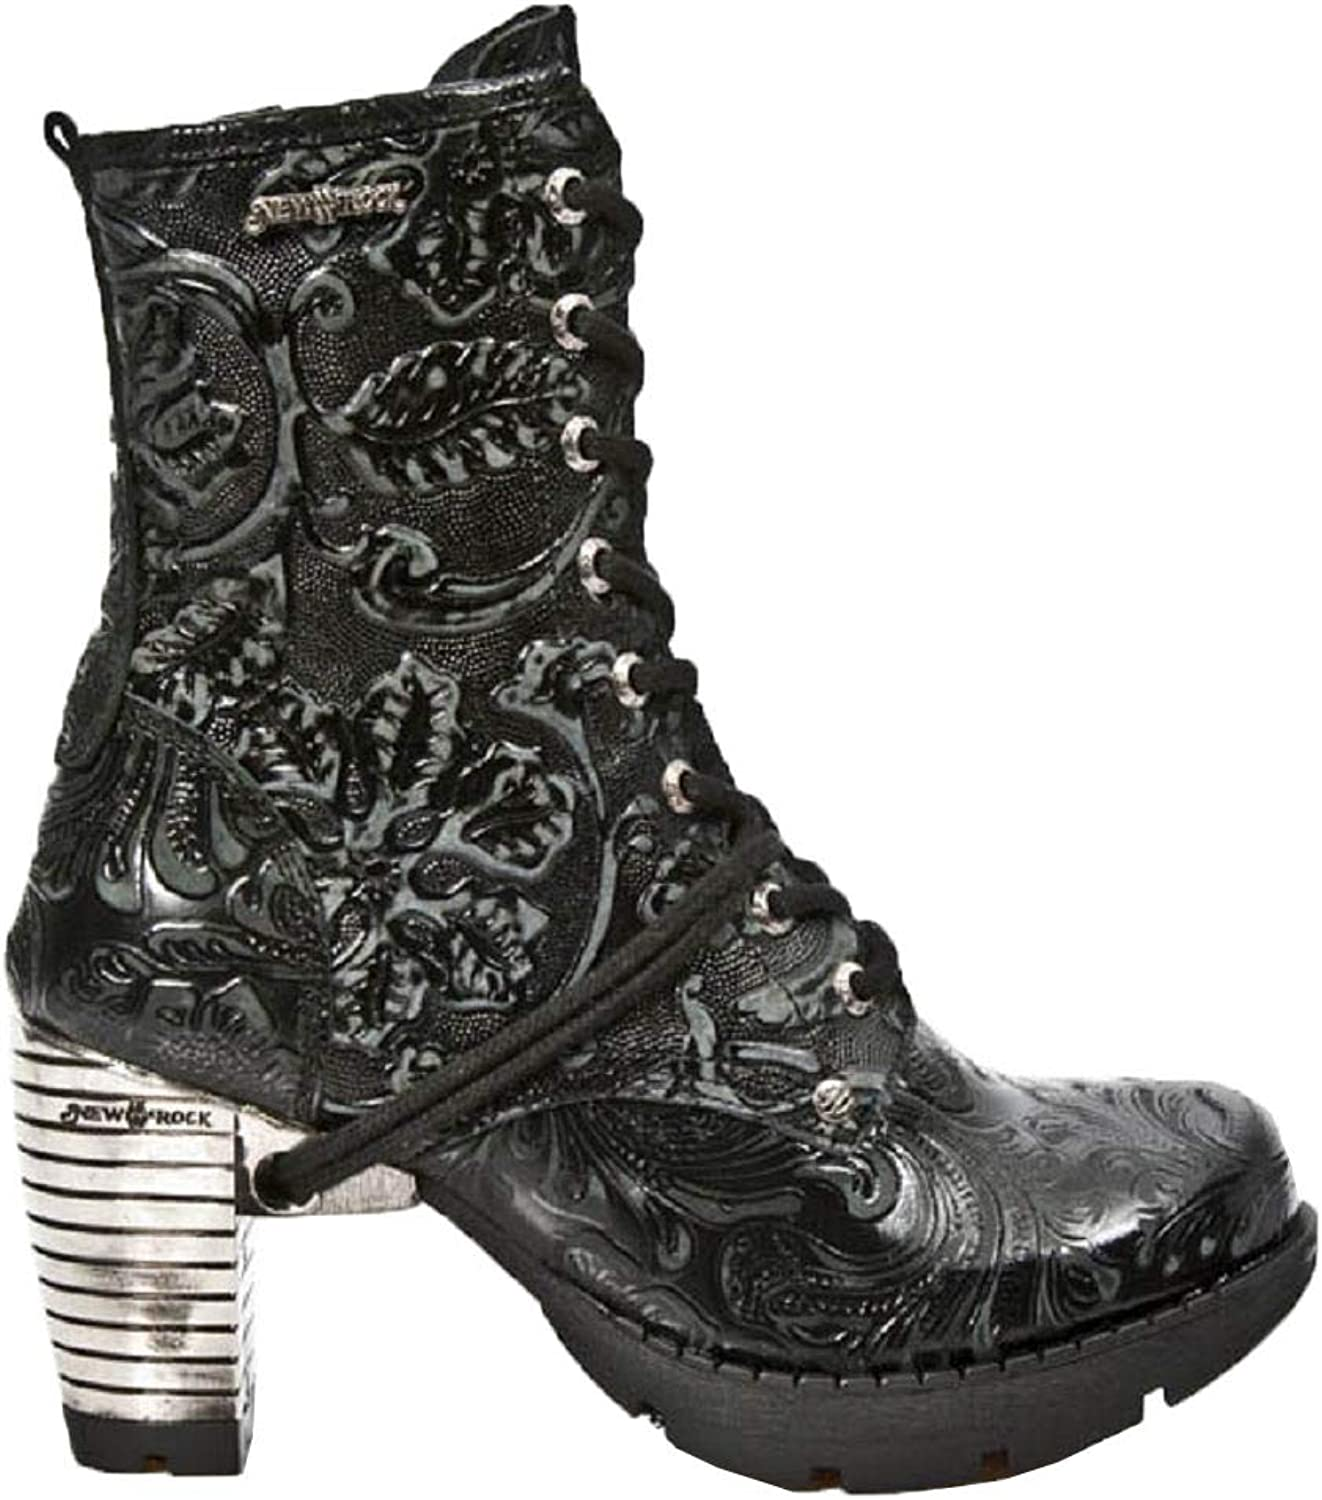 Smart Range Leather Newrock New Rock TR001-S24 Vintage Flower Black Steel Heel Ankle Gothic Boots